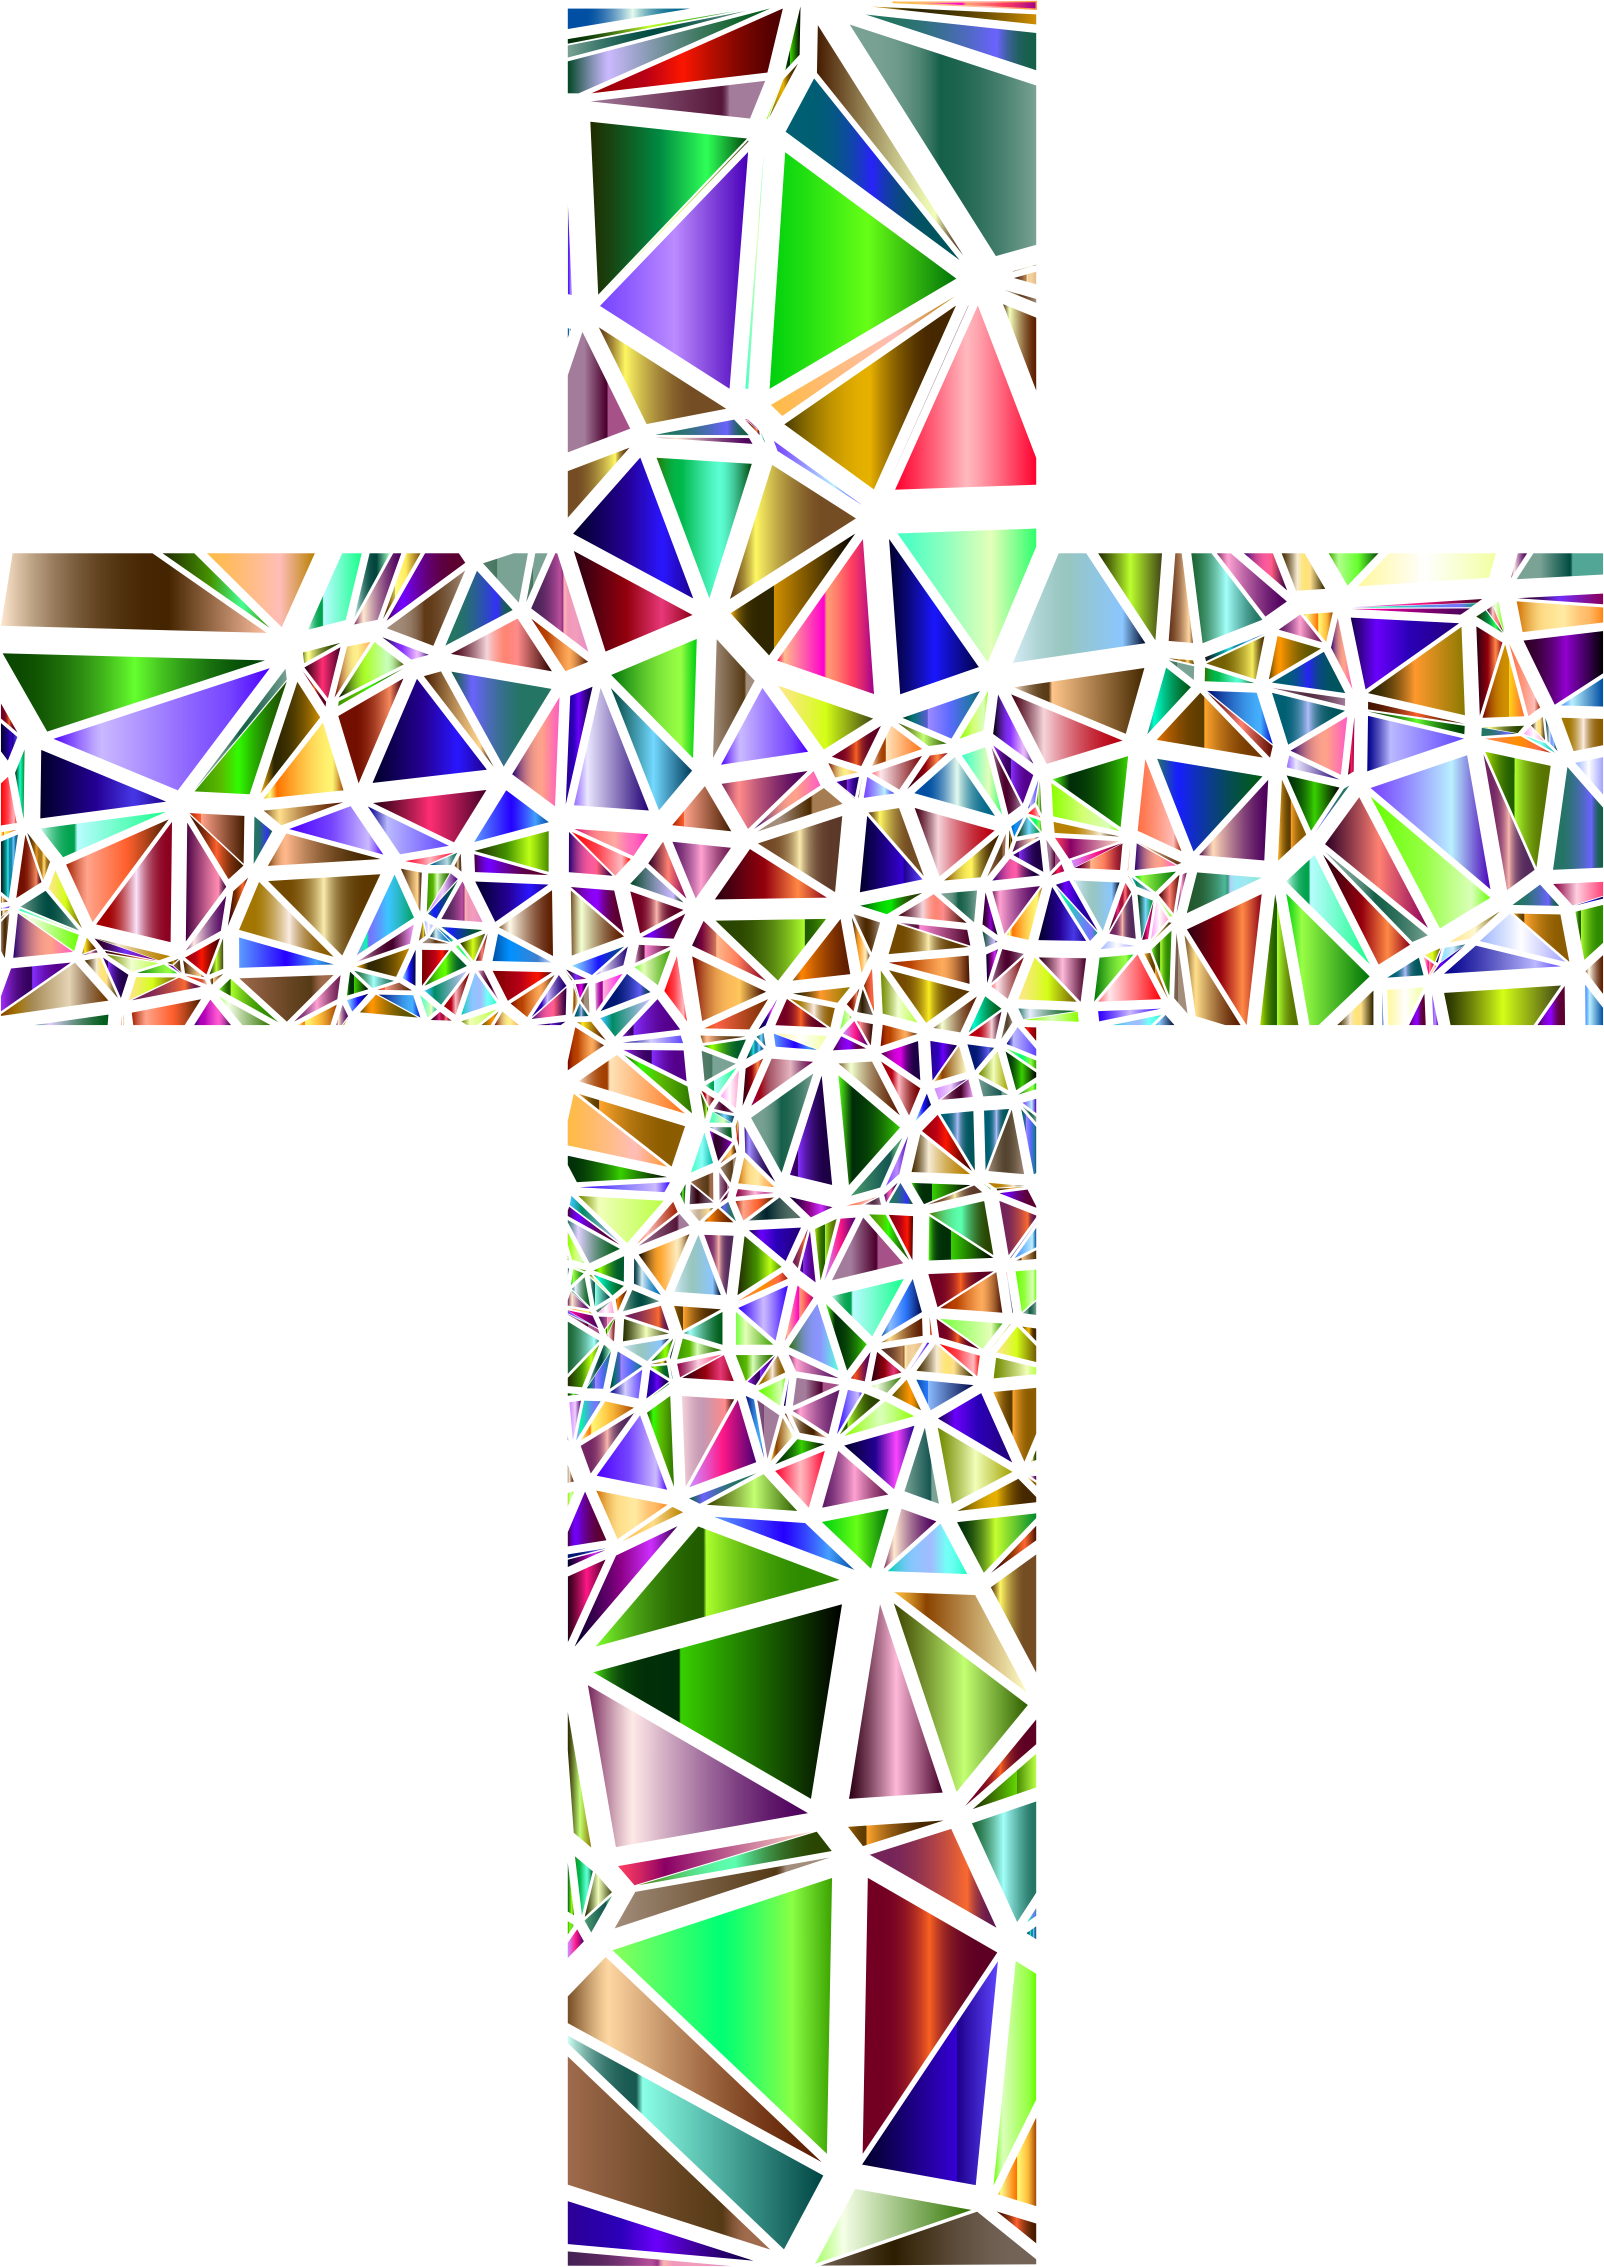 Stained glass cross clipart graphic royalty free Clipart - Low Poly Stained Glass Cross 5 No Background graphic royalty free